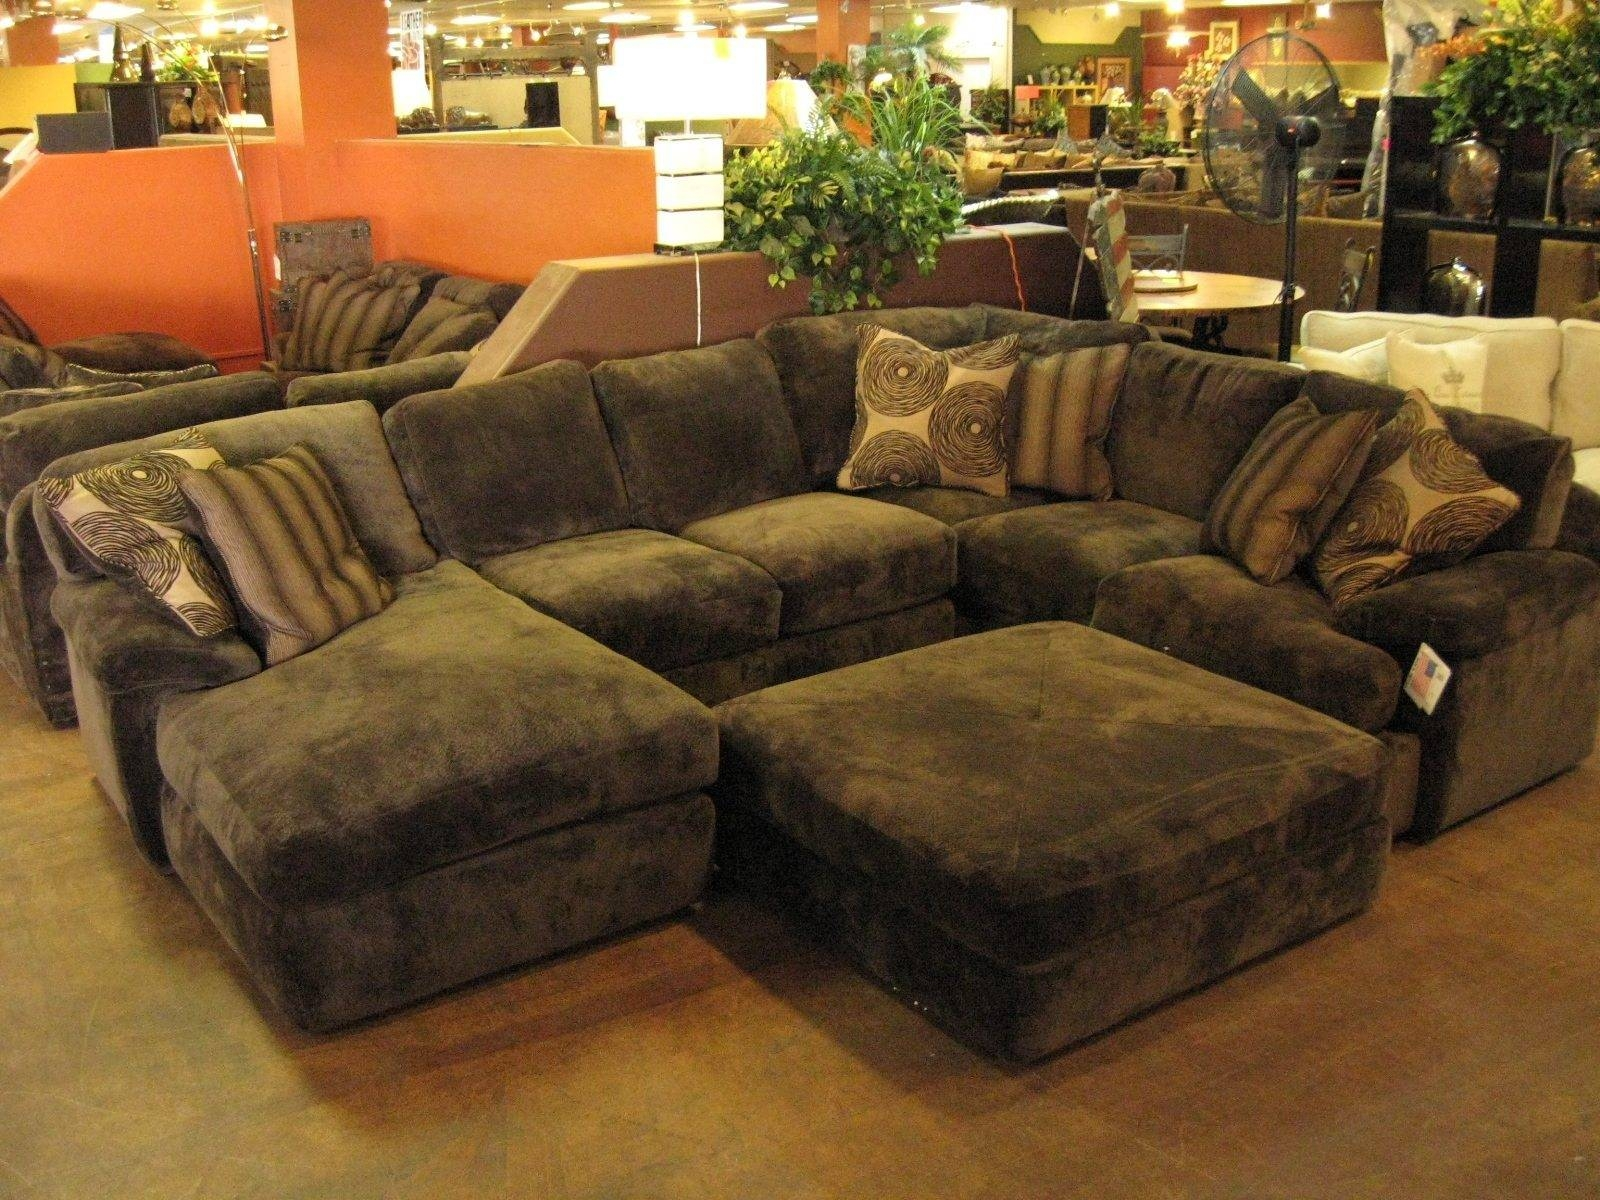 Attractive Sectional Sleeper Sofa With Chaise Fantastic Furniture Intended For Sectional Sofas With Sleeper And Chaise (View 2 of 30)